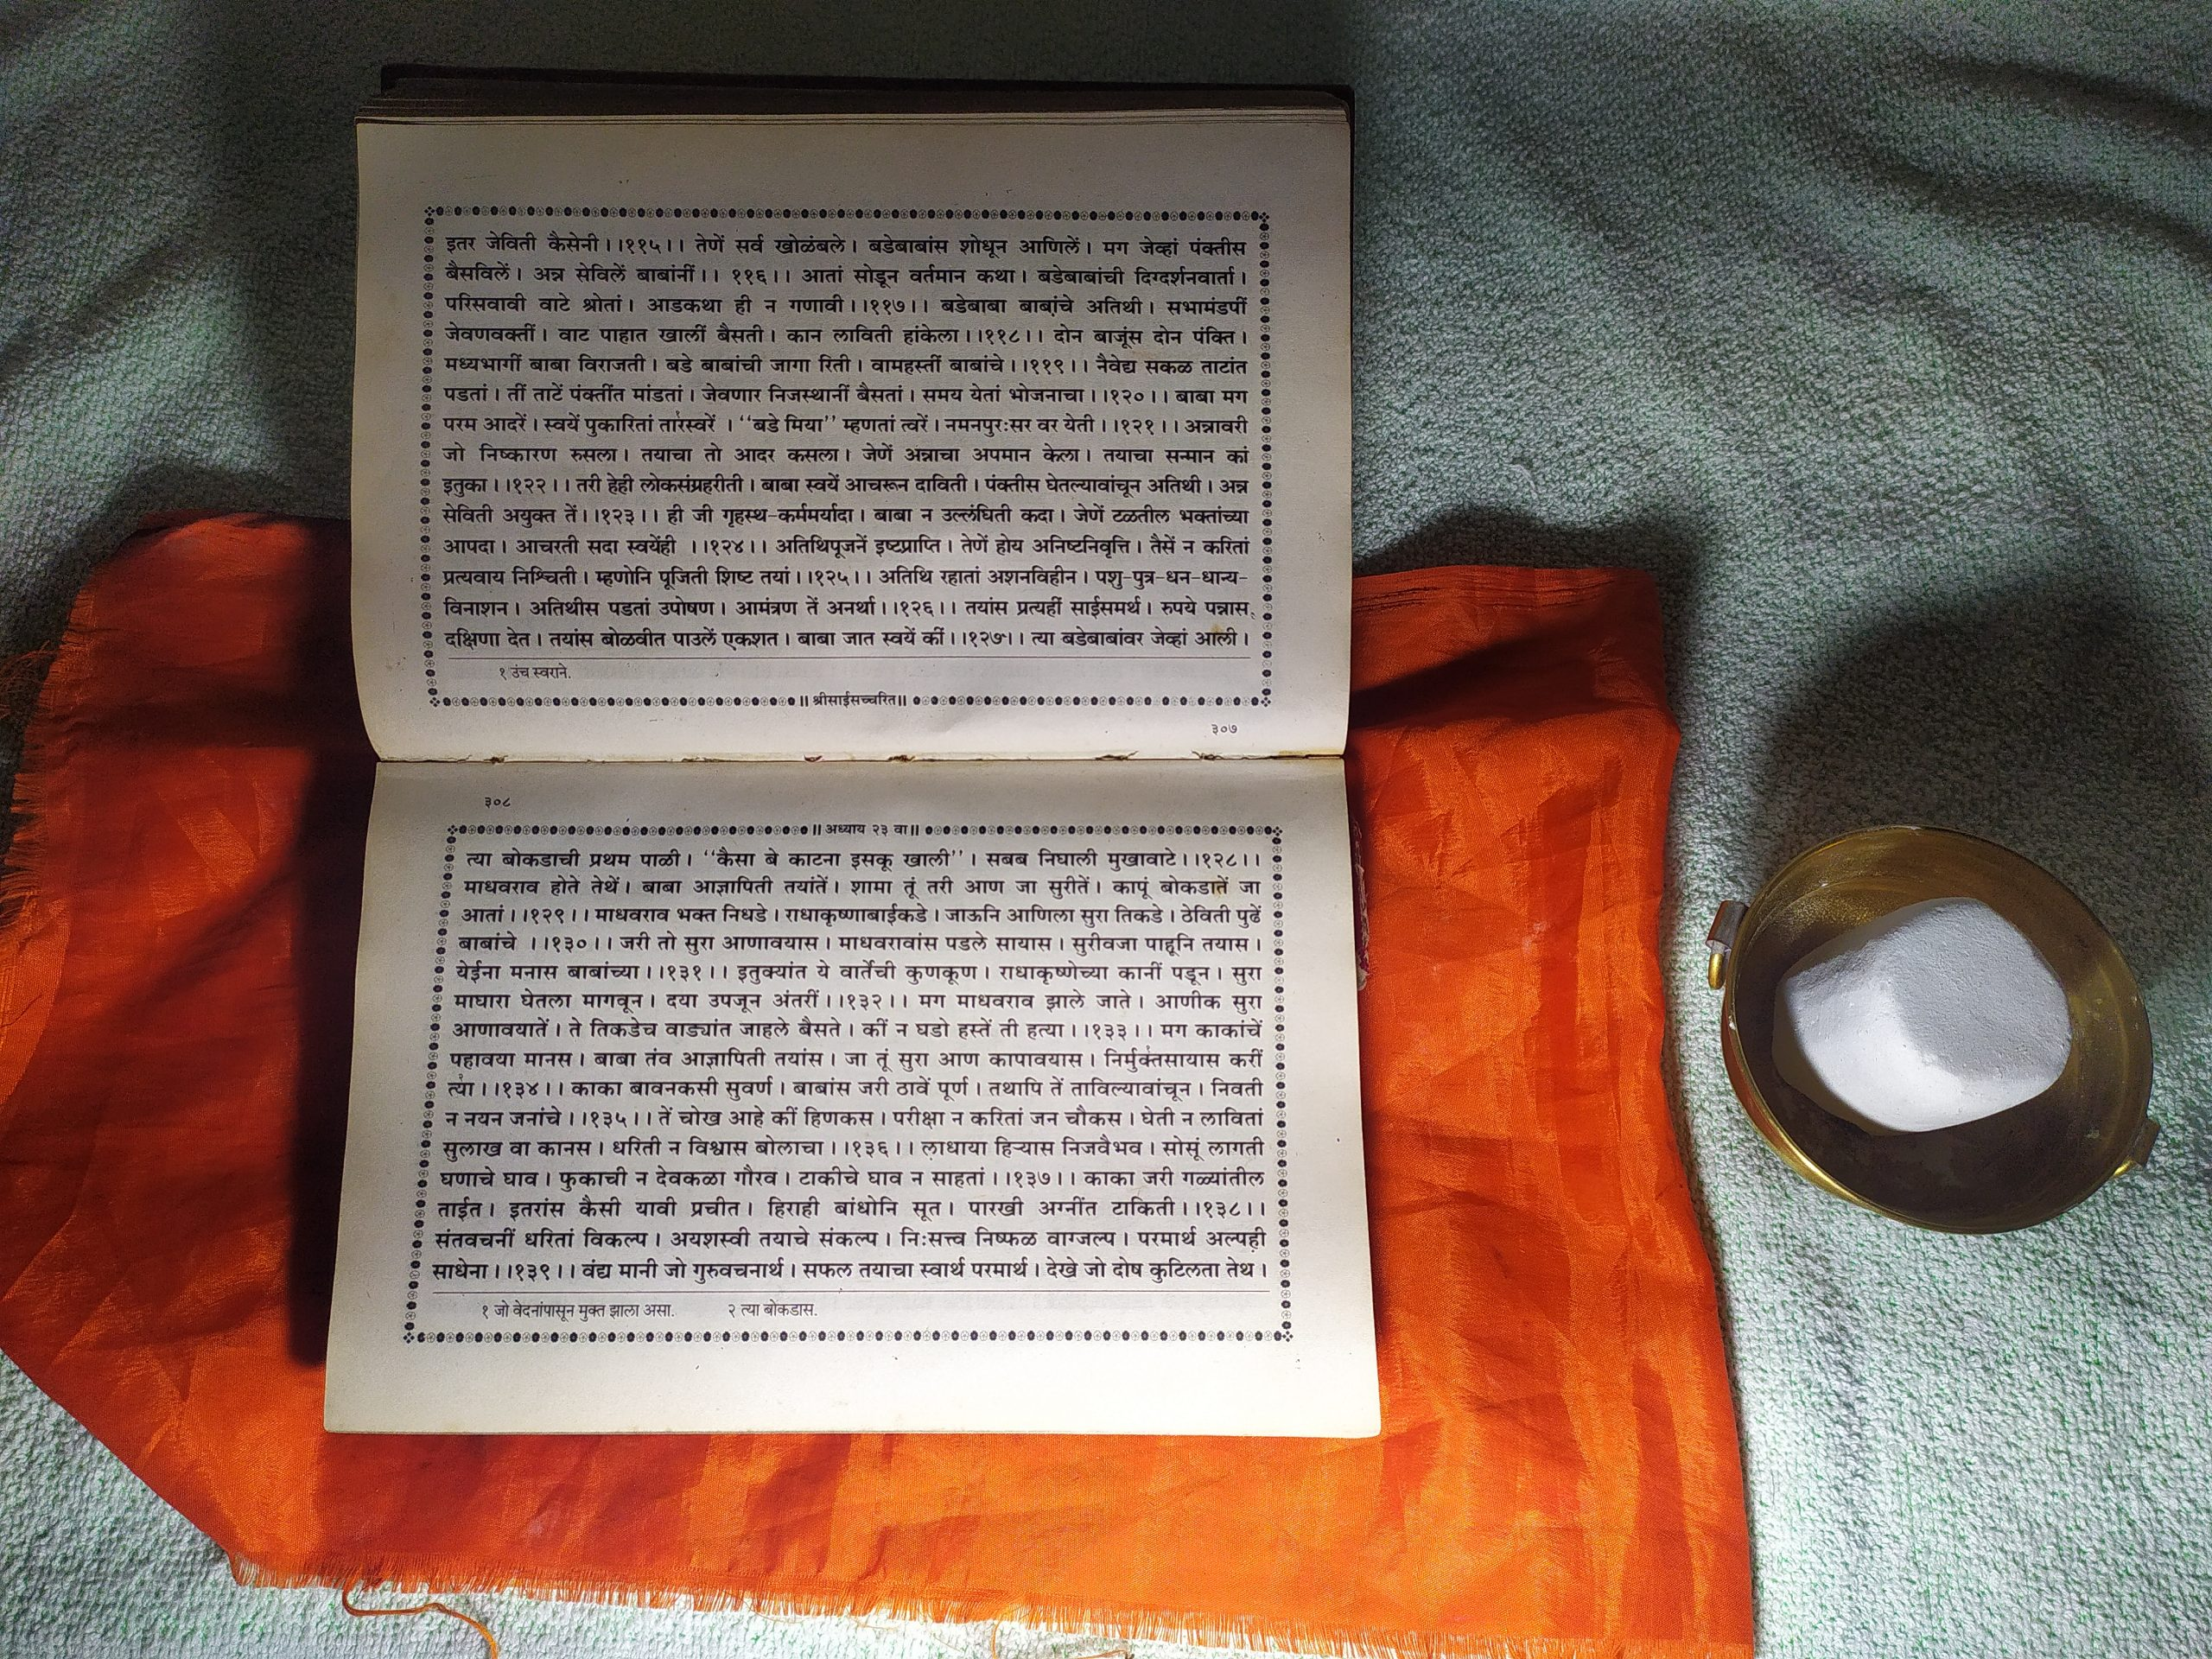 A religious book in Sanskrit language